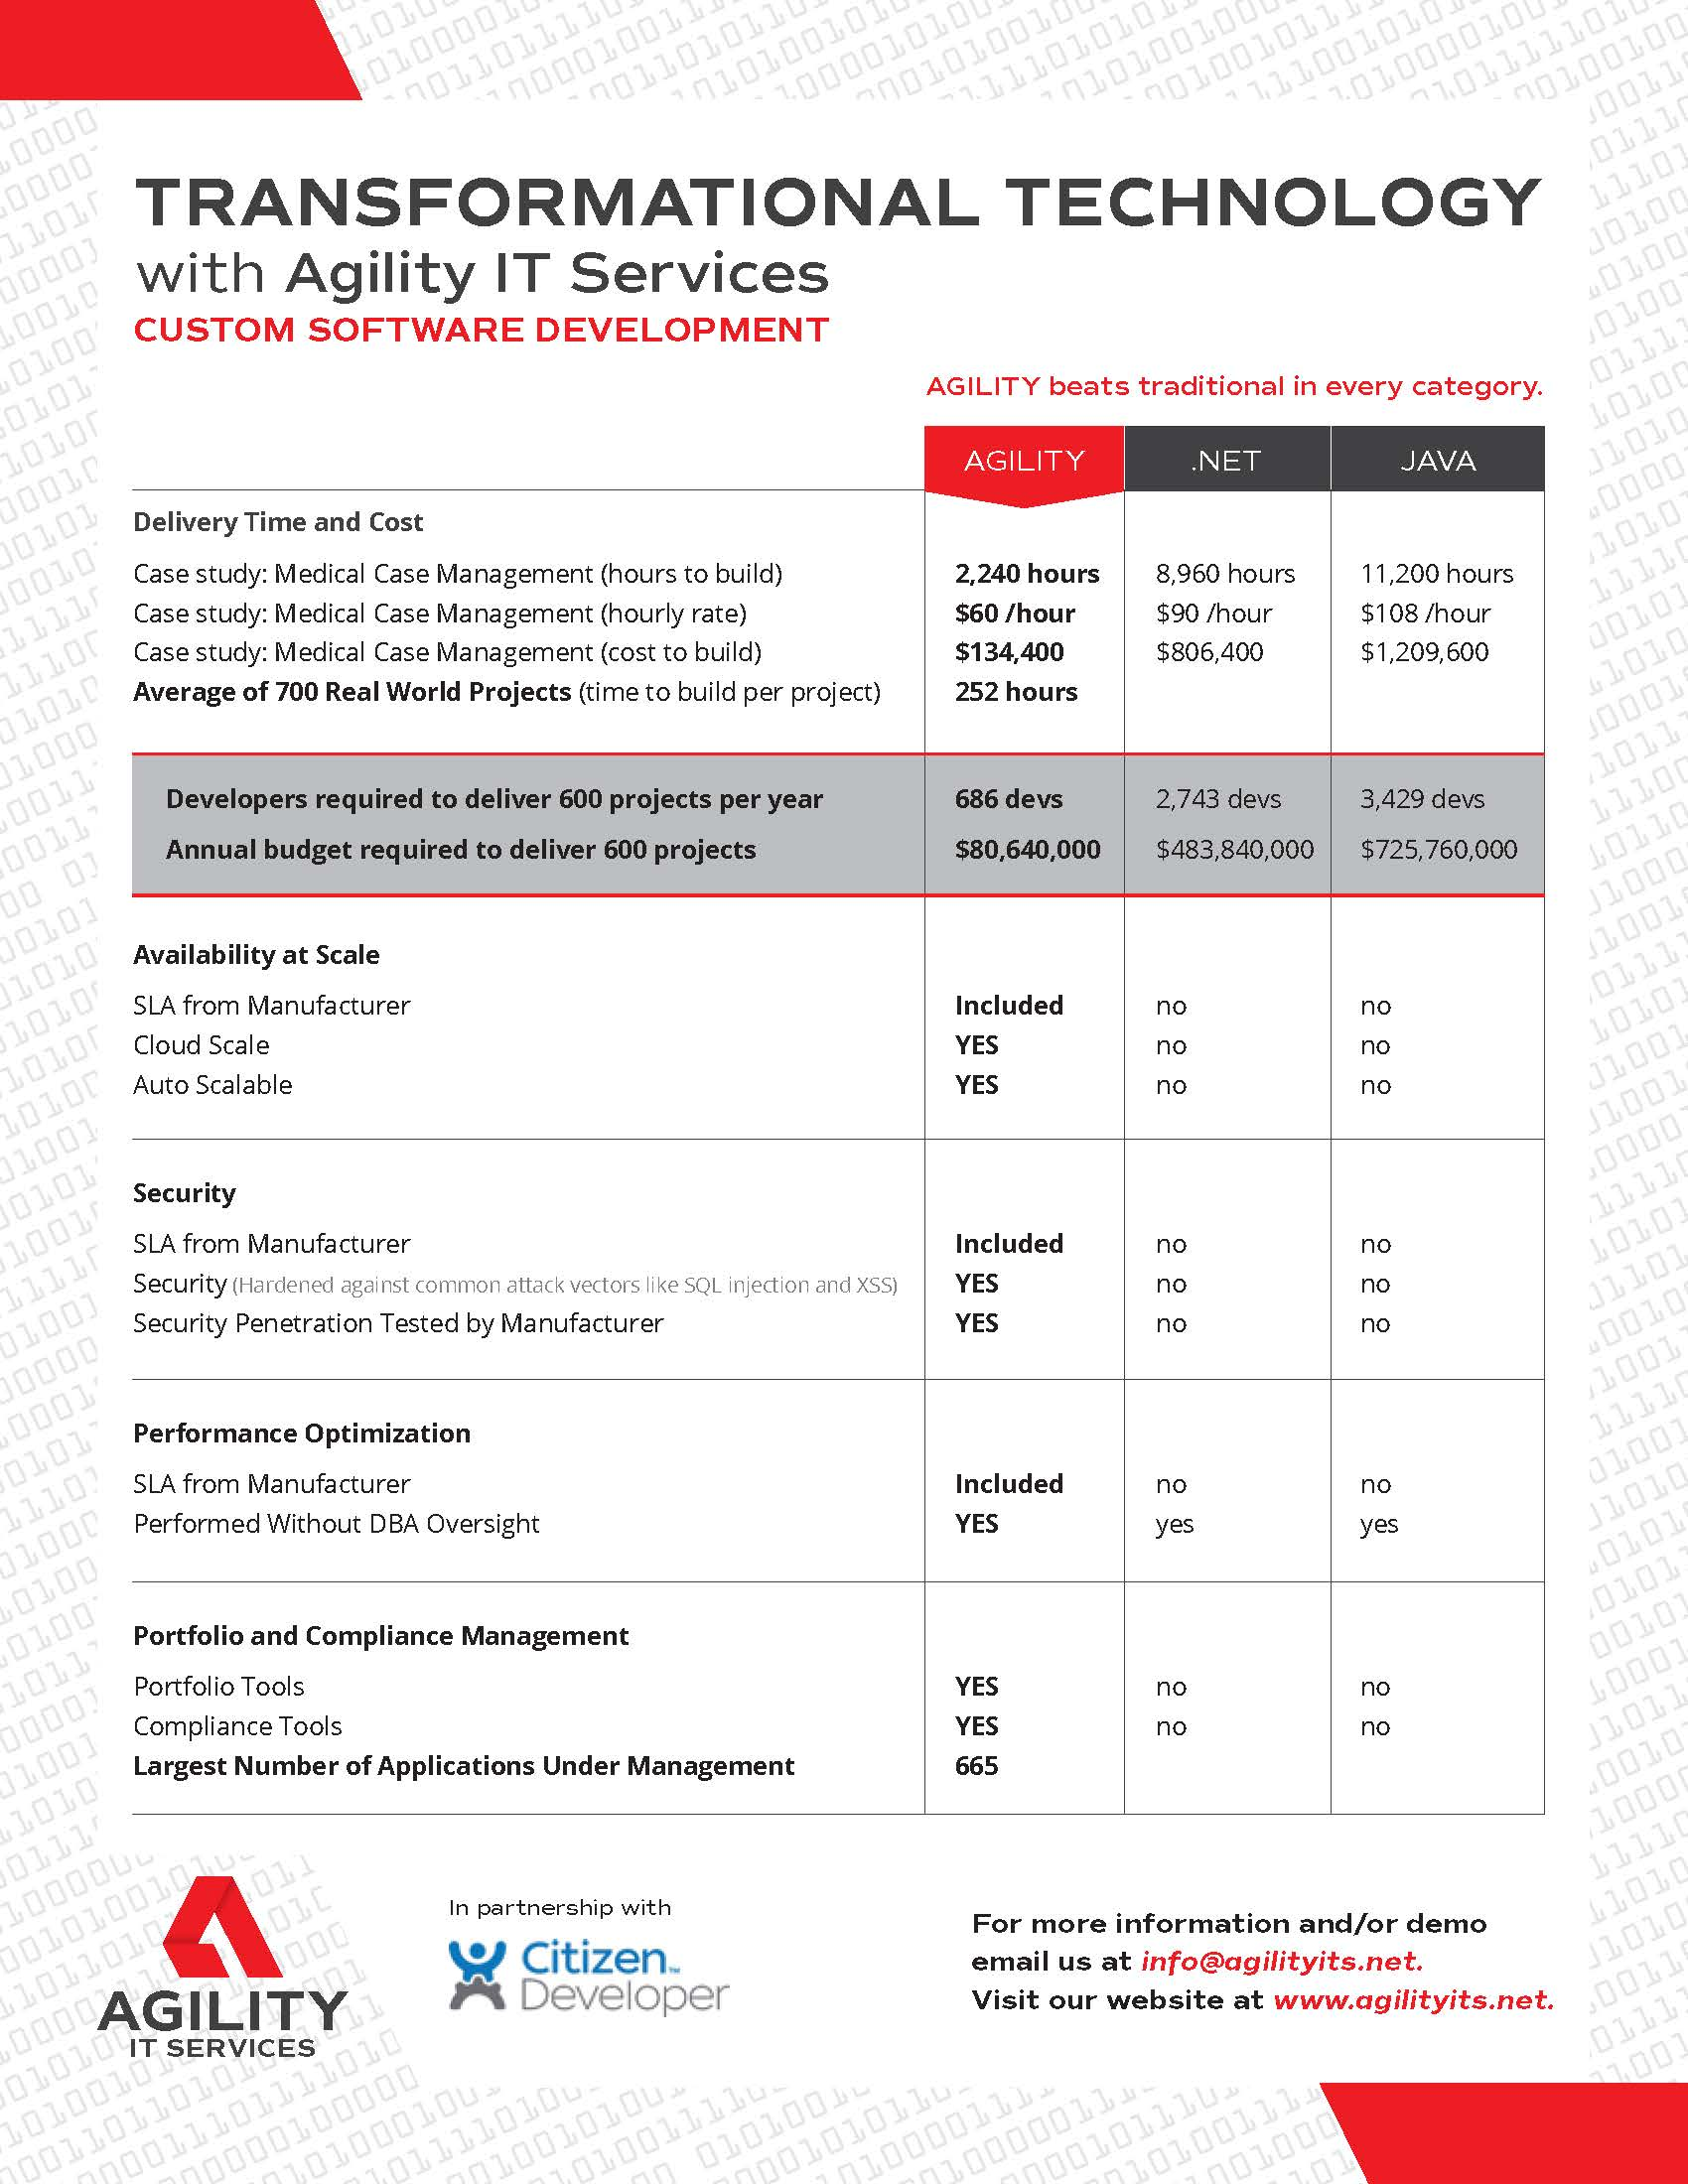 Agility IT Services - Transformational Technology